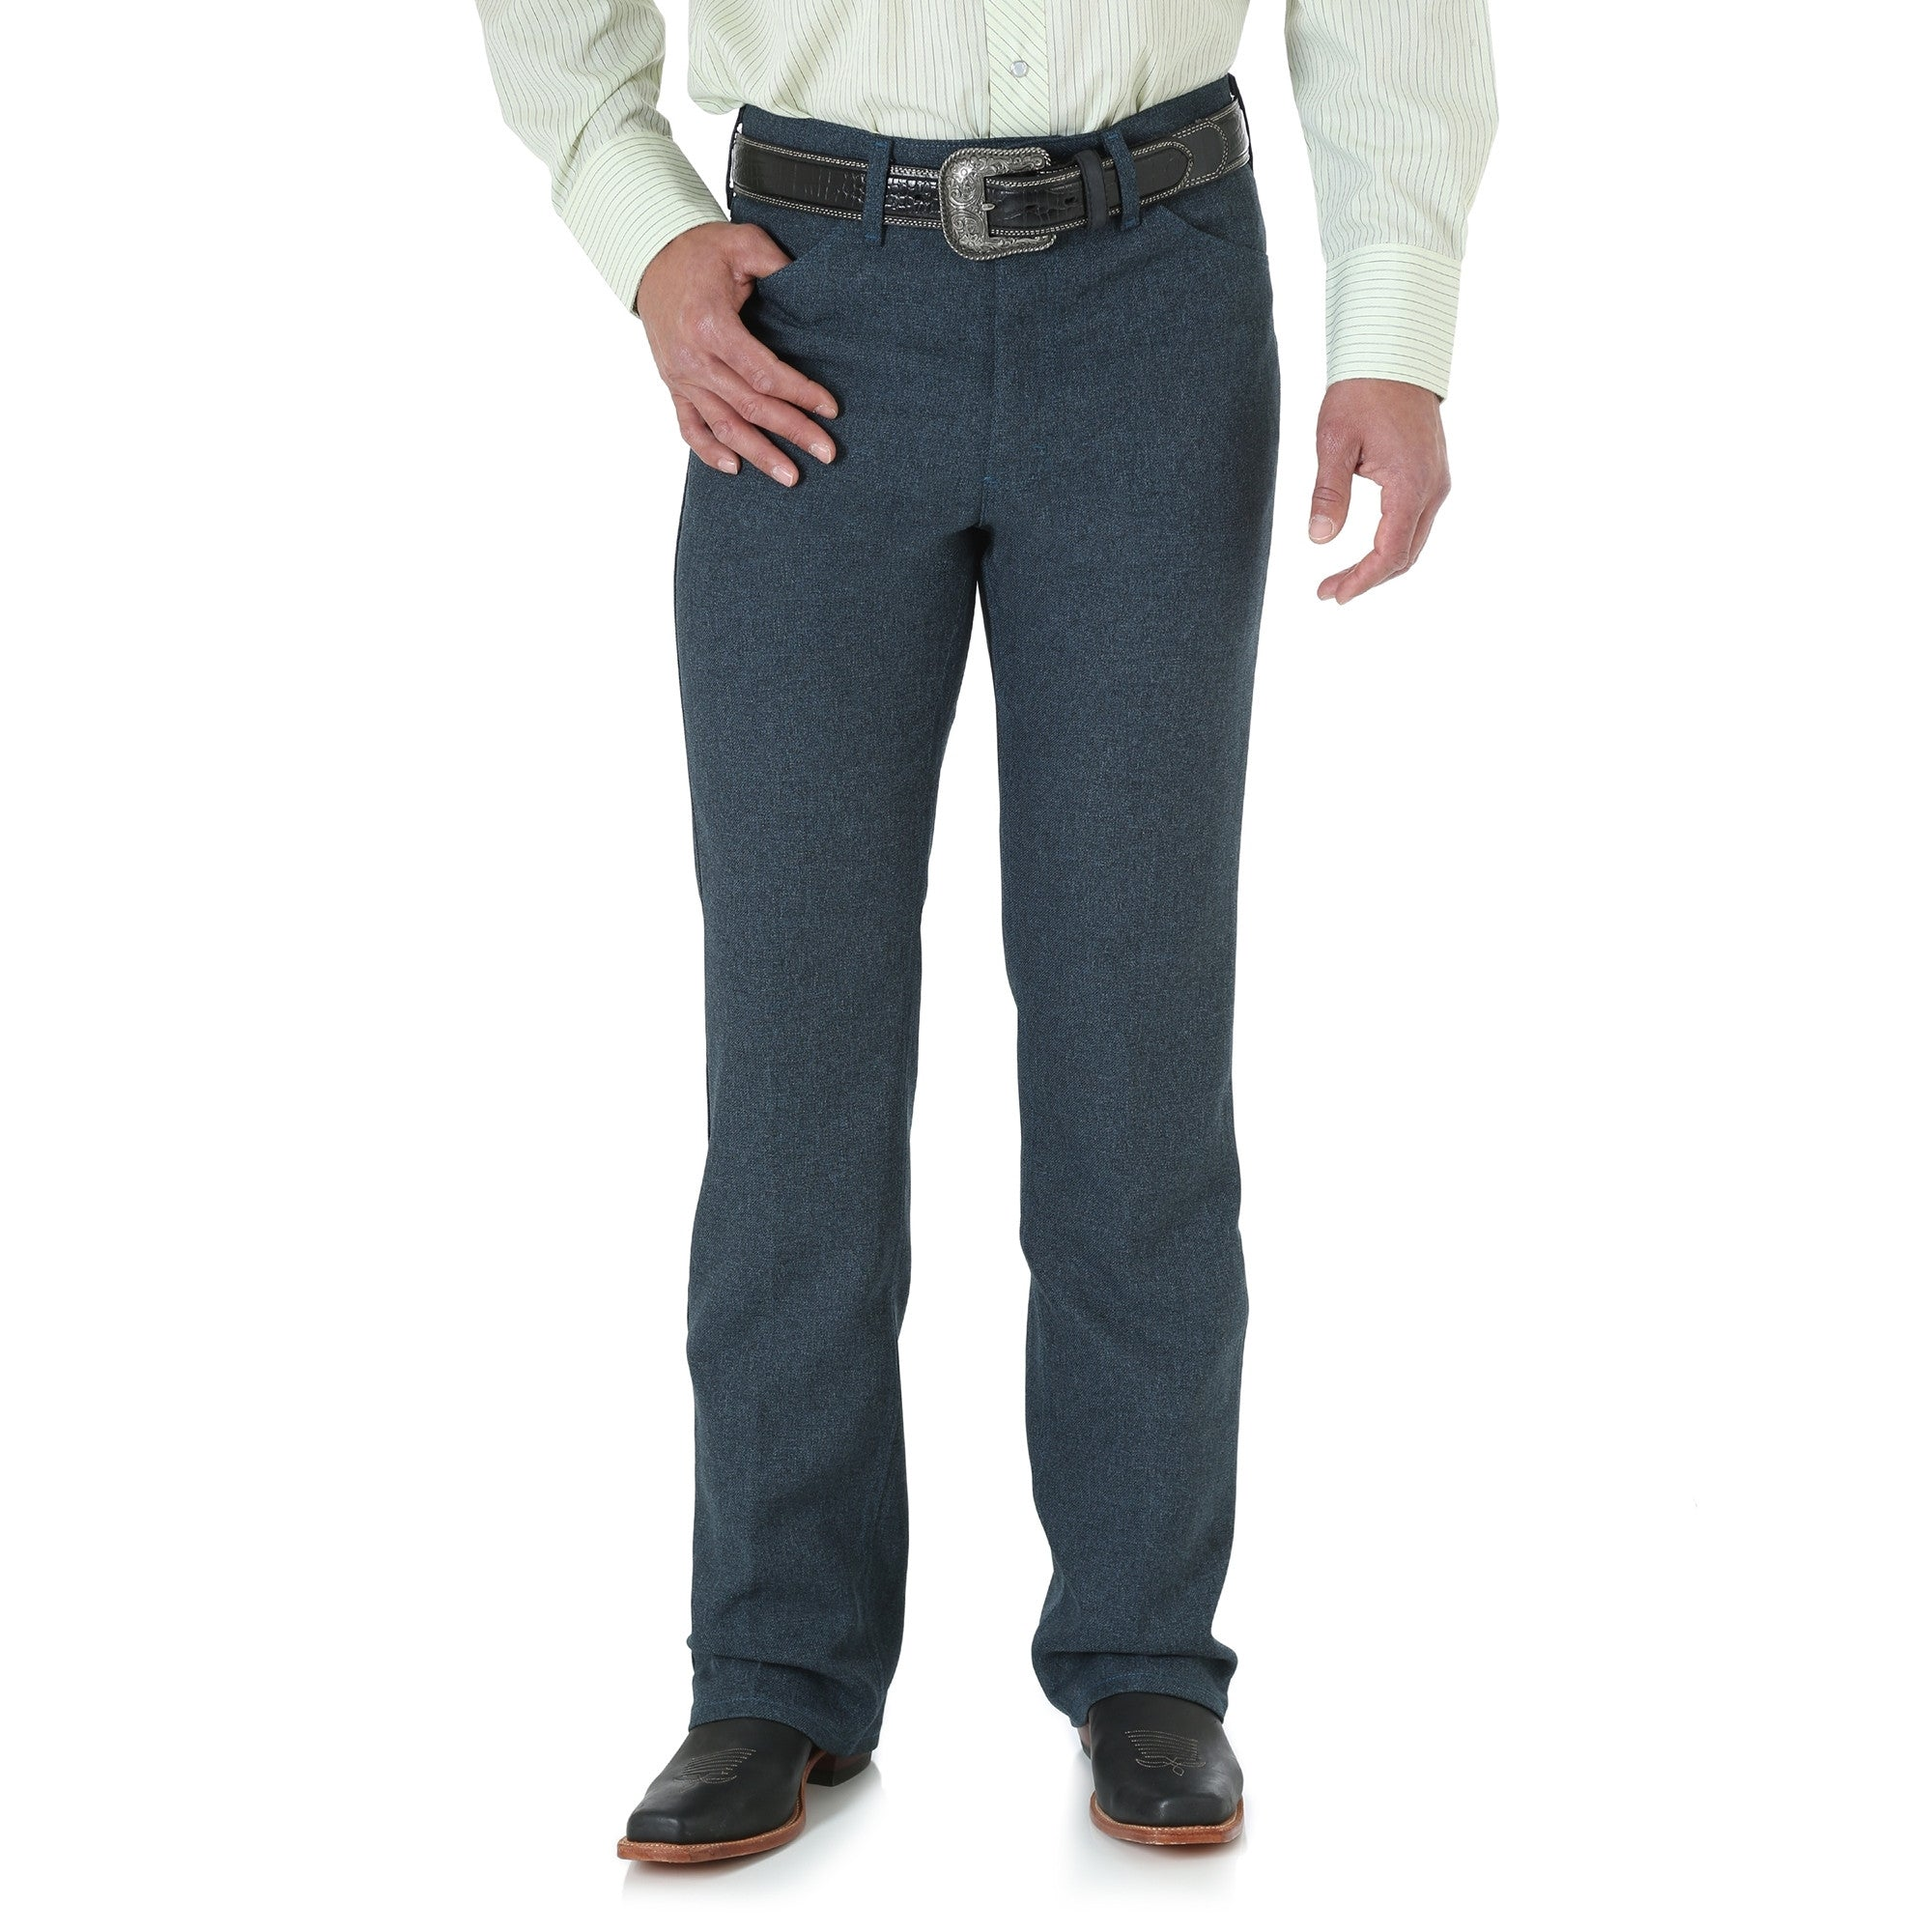 Men's Wrangler Wrancher Dress Jean #00082HU